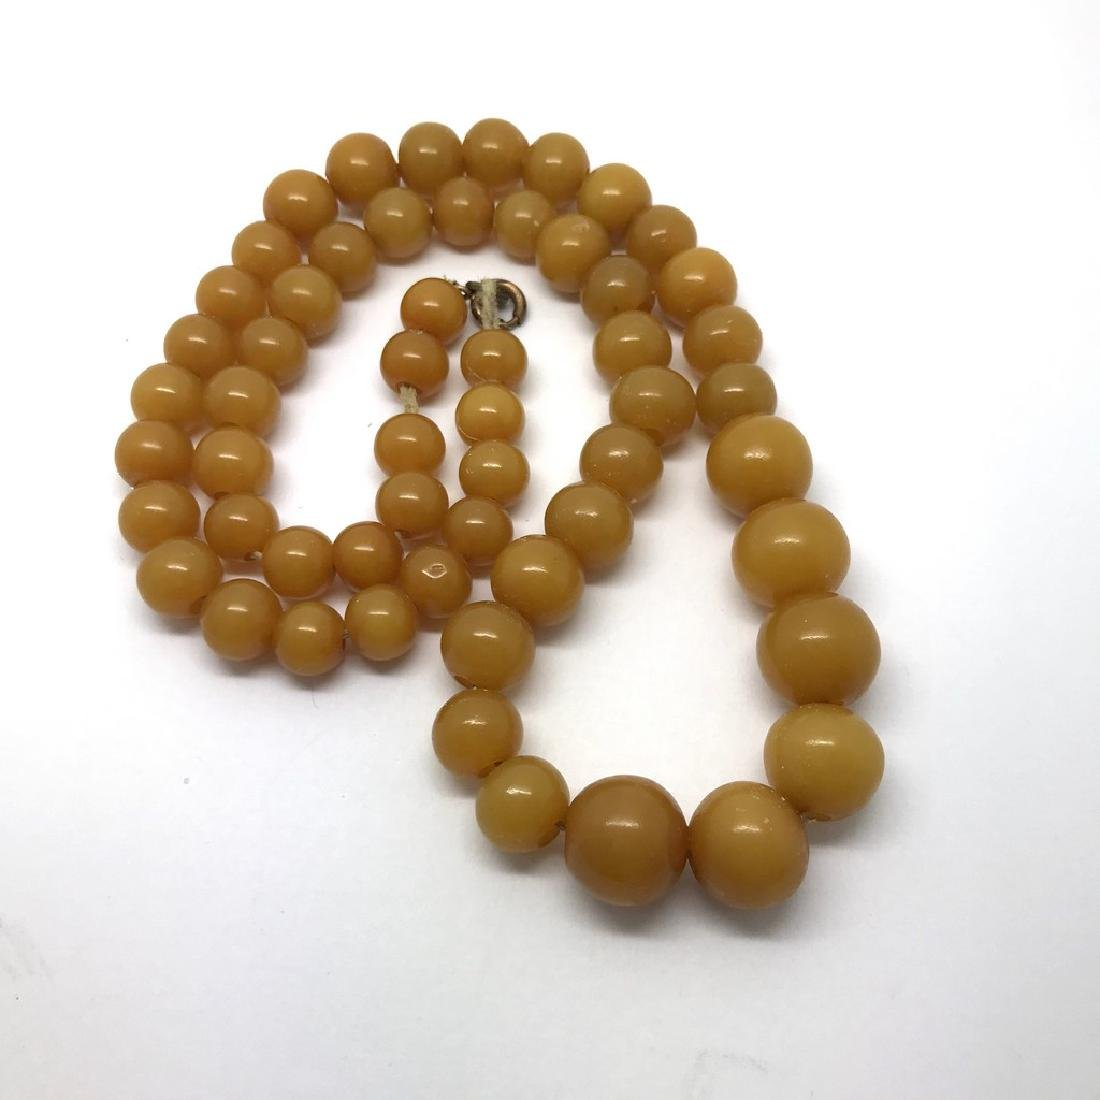 Antique necklace toffee amber design bakelite beads - 3